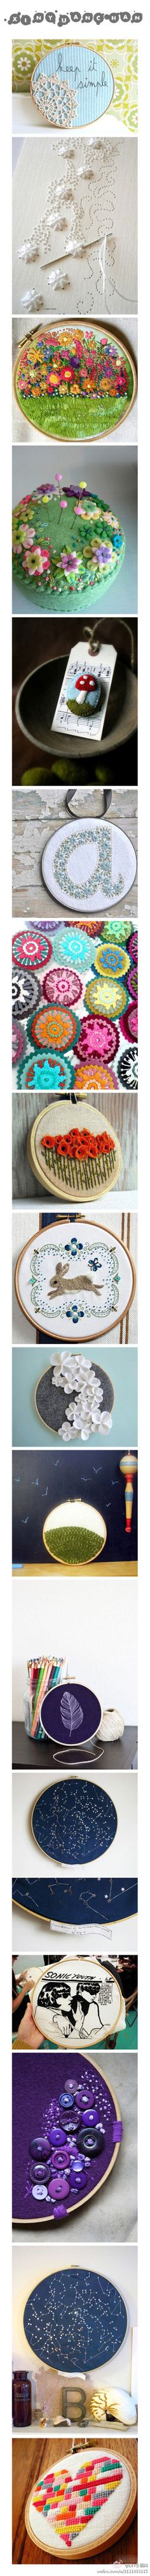 Needlepoint, these are beautiful pieces.